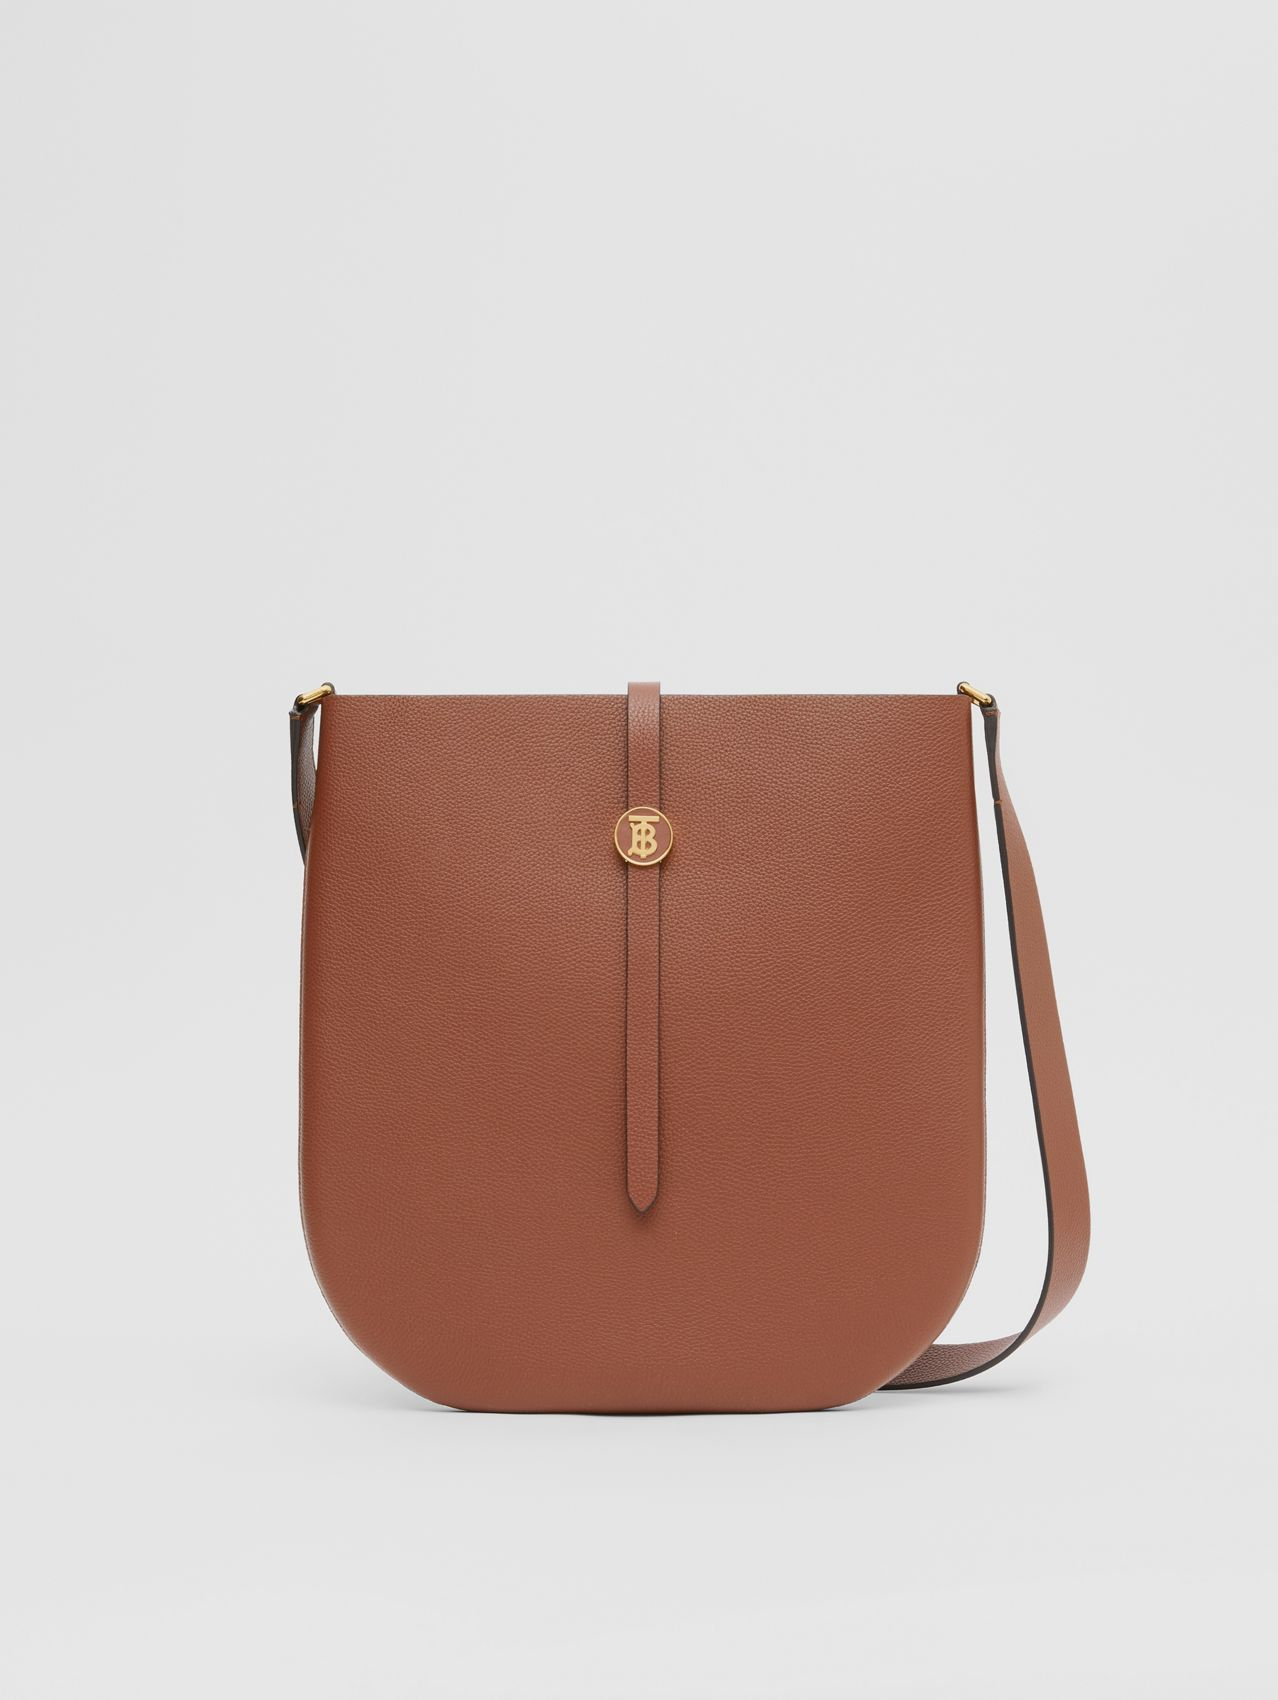 Grainy Leather Anne Bag in Tan